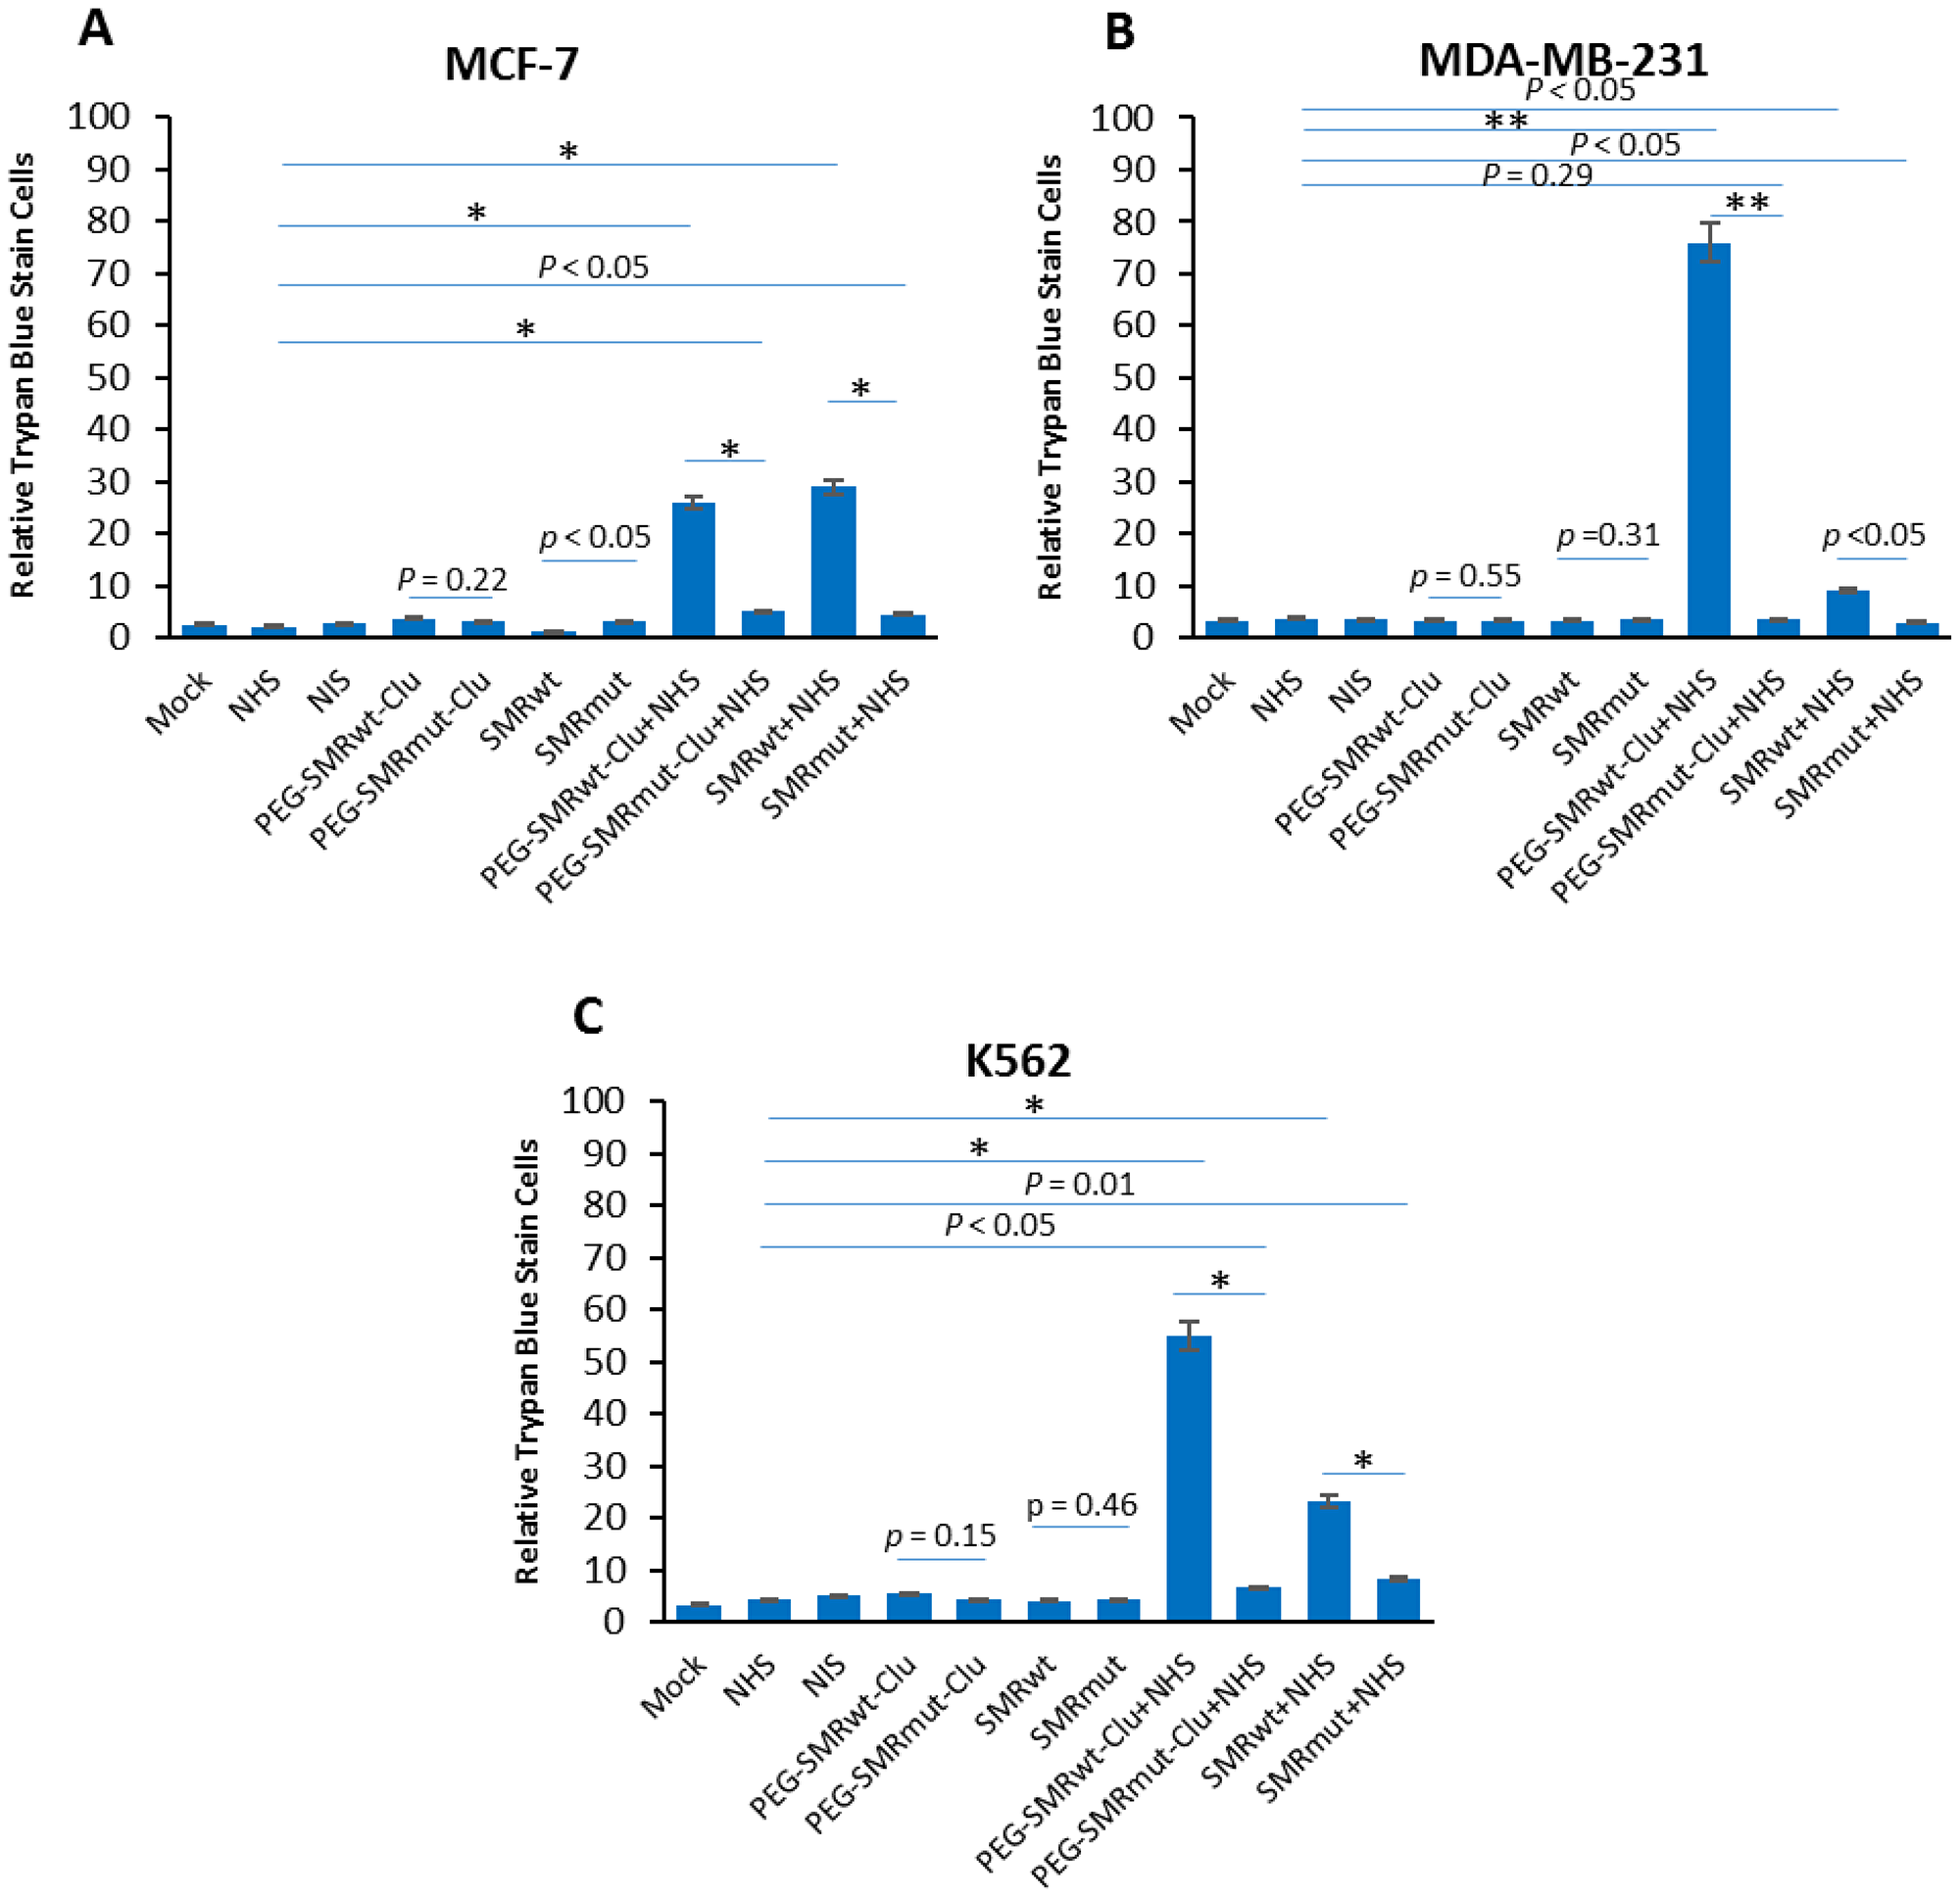 SMRwt peptides blocked mortalin-driven EV release of mortalin and induced complement-mediated cytotoxicity in K562, MCF-7 and MDA-MB-231 cultures.